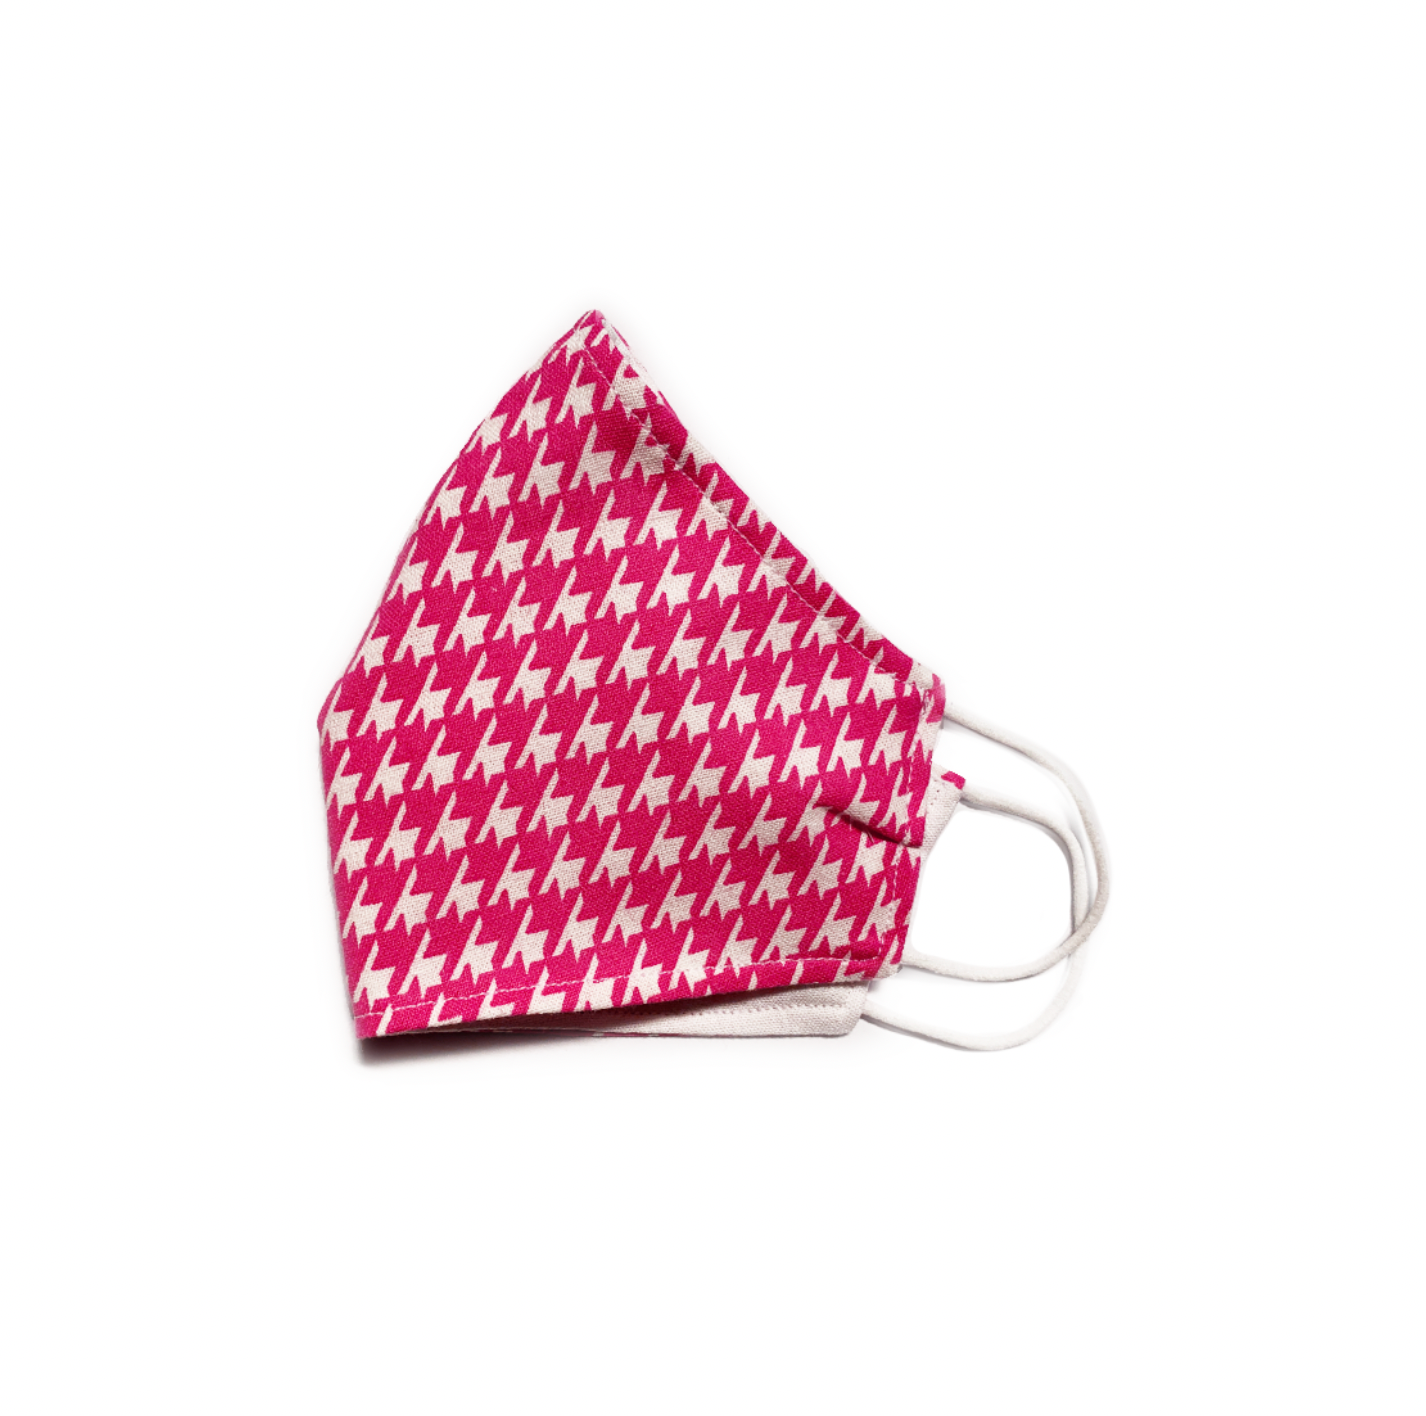 Pink Houndstooth (Reusable Face Mask)